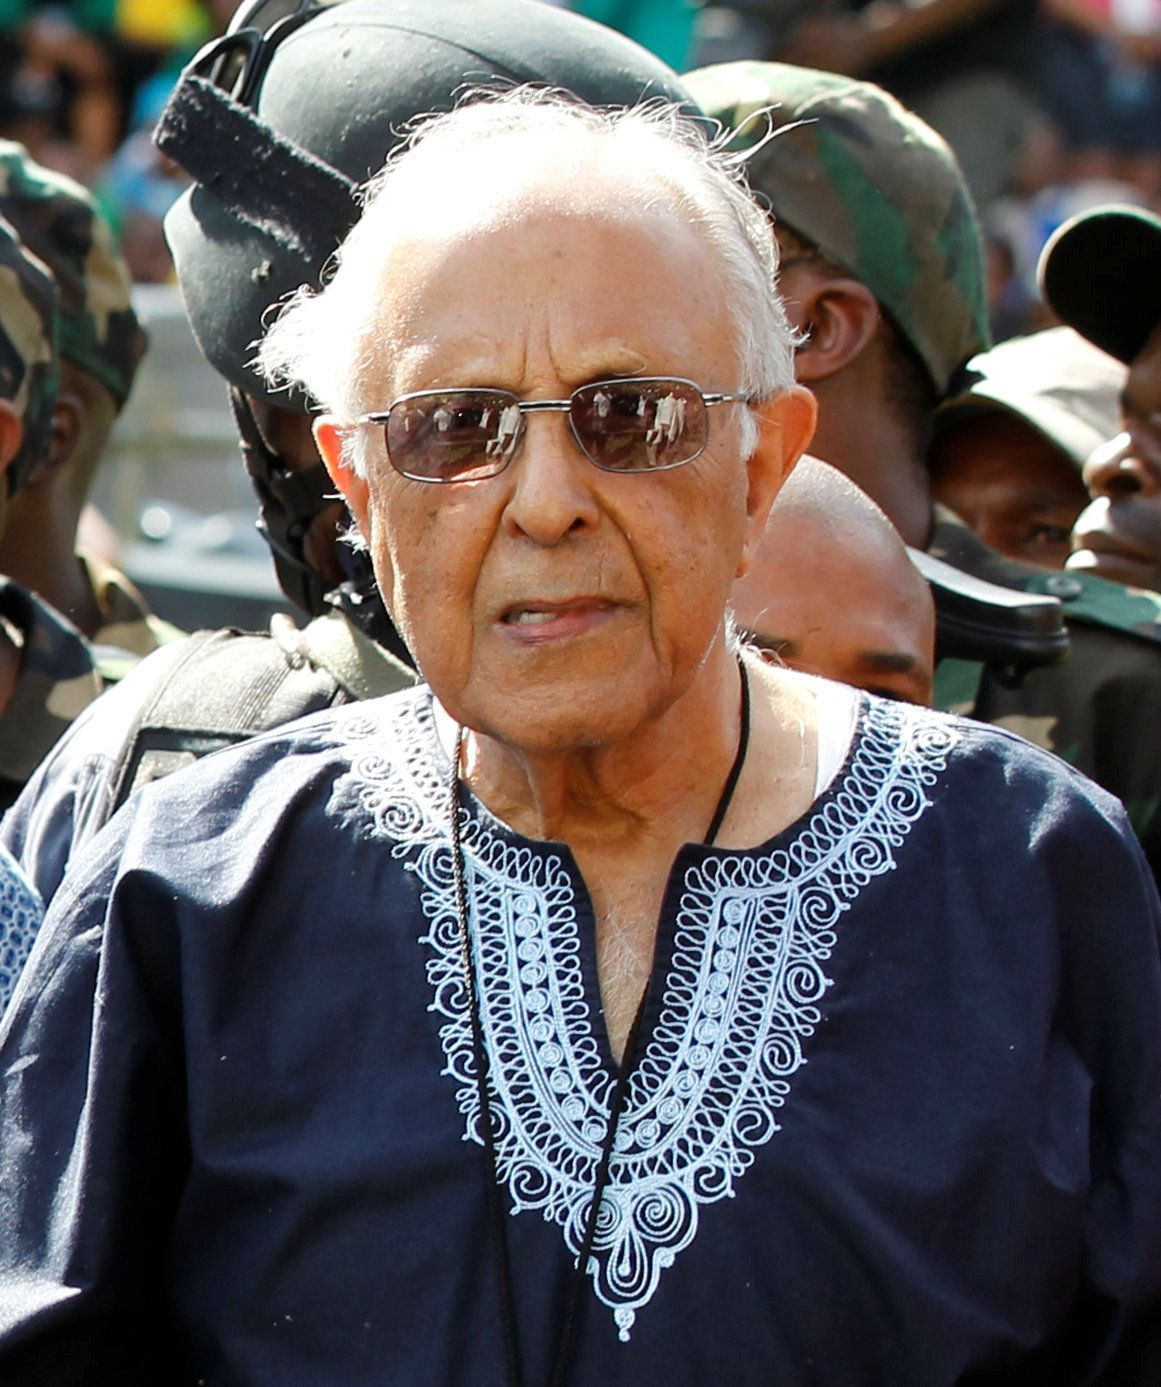 Veteran South African anti-apartheid activist Ahmed Kathrada looks on during the ANC's centenary celebration in Bloemfontein, South Africa, January 8, 2012. Picture taken January 8, 2012. REUTERS/Siphiwe Sibeko